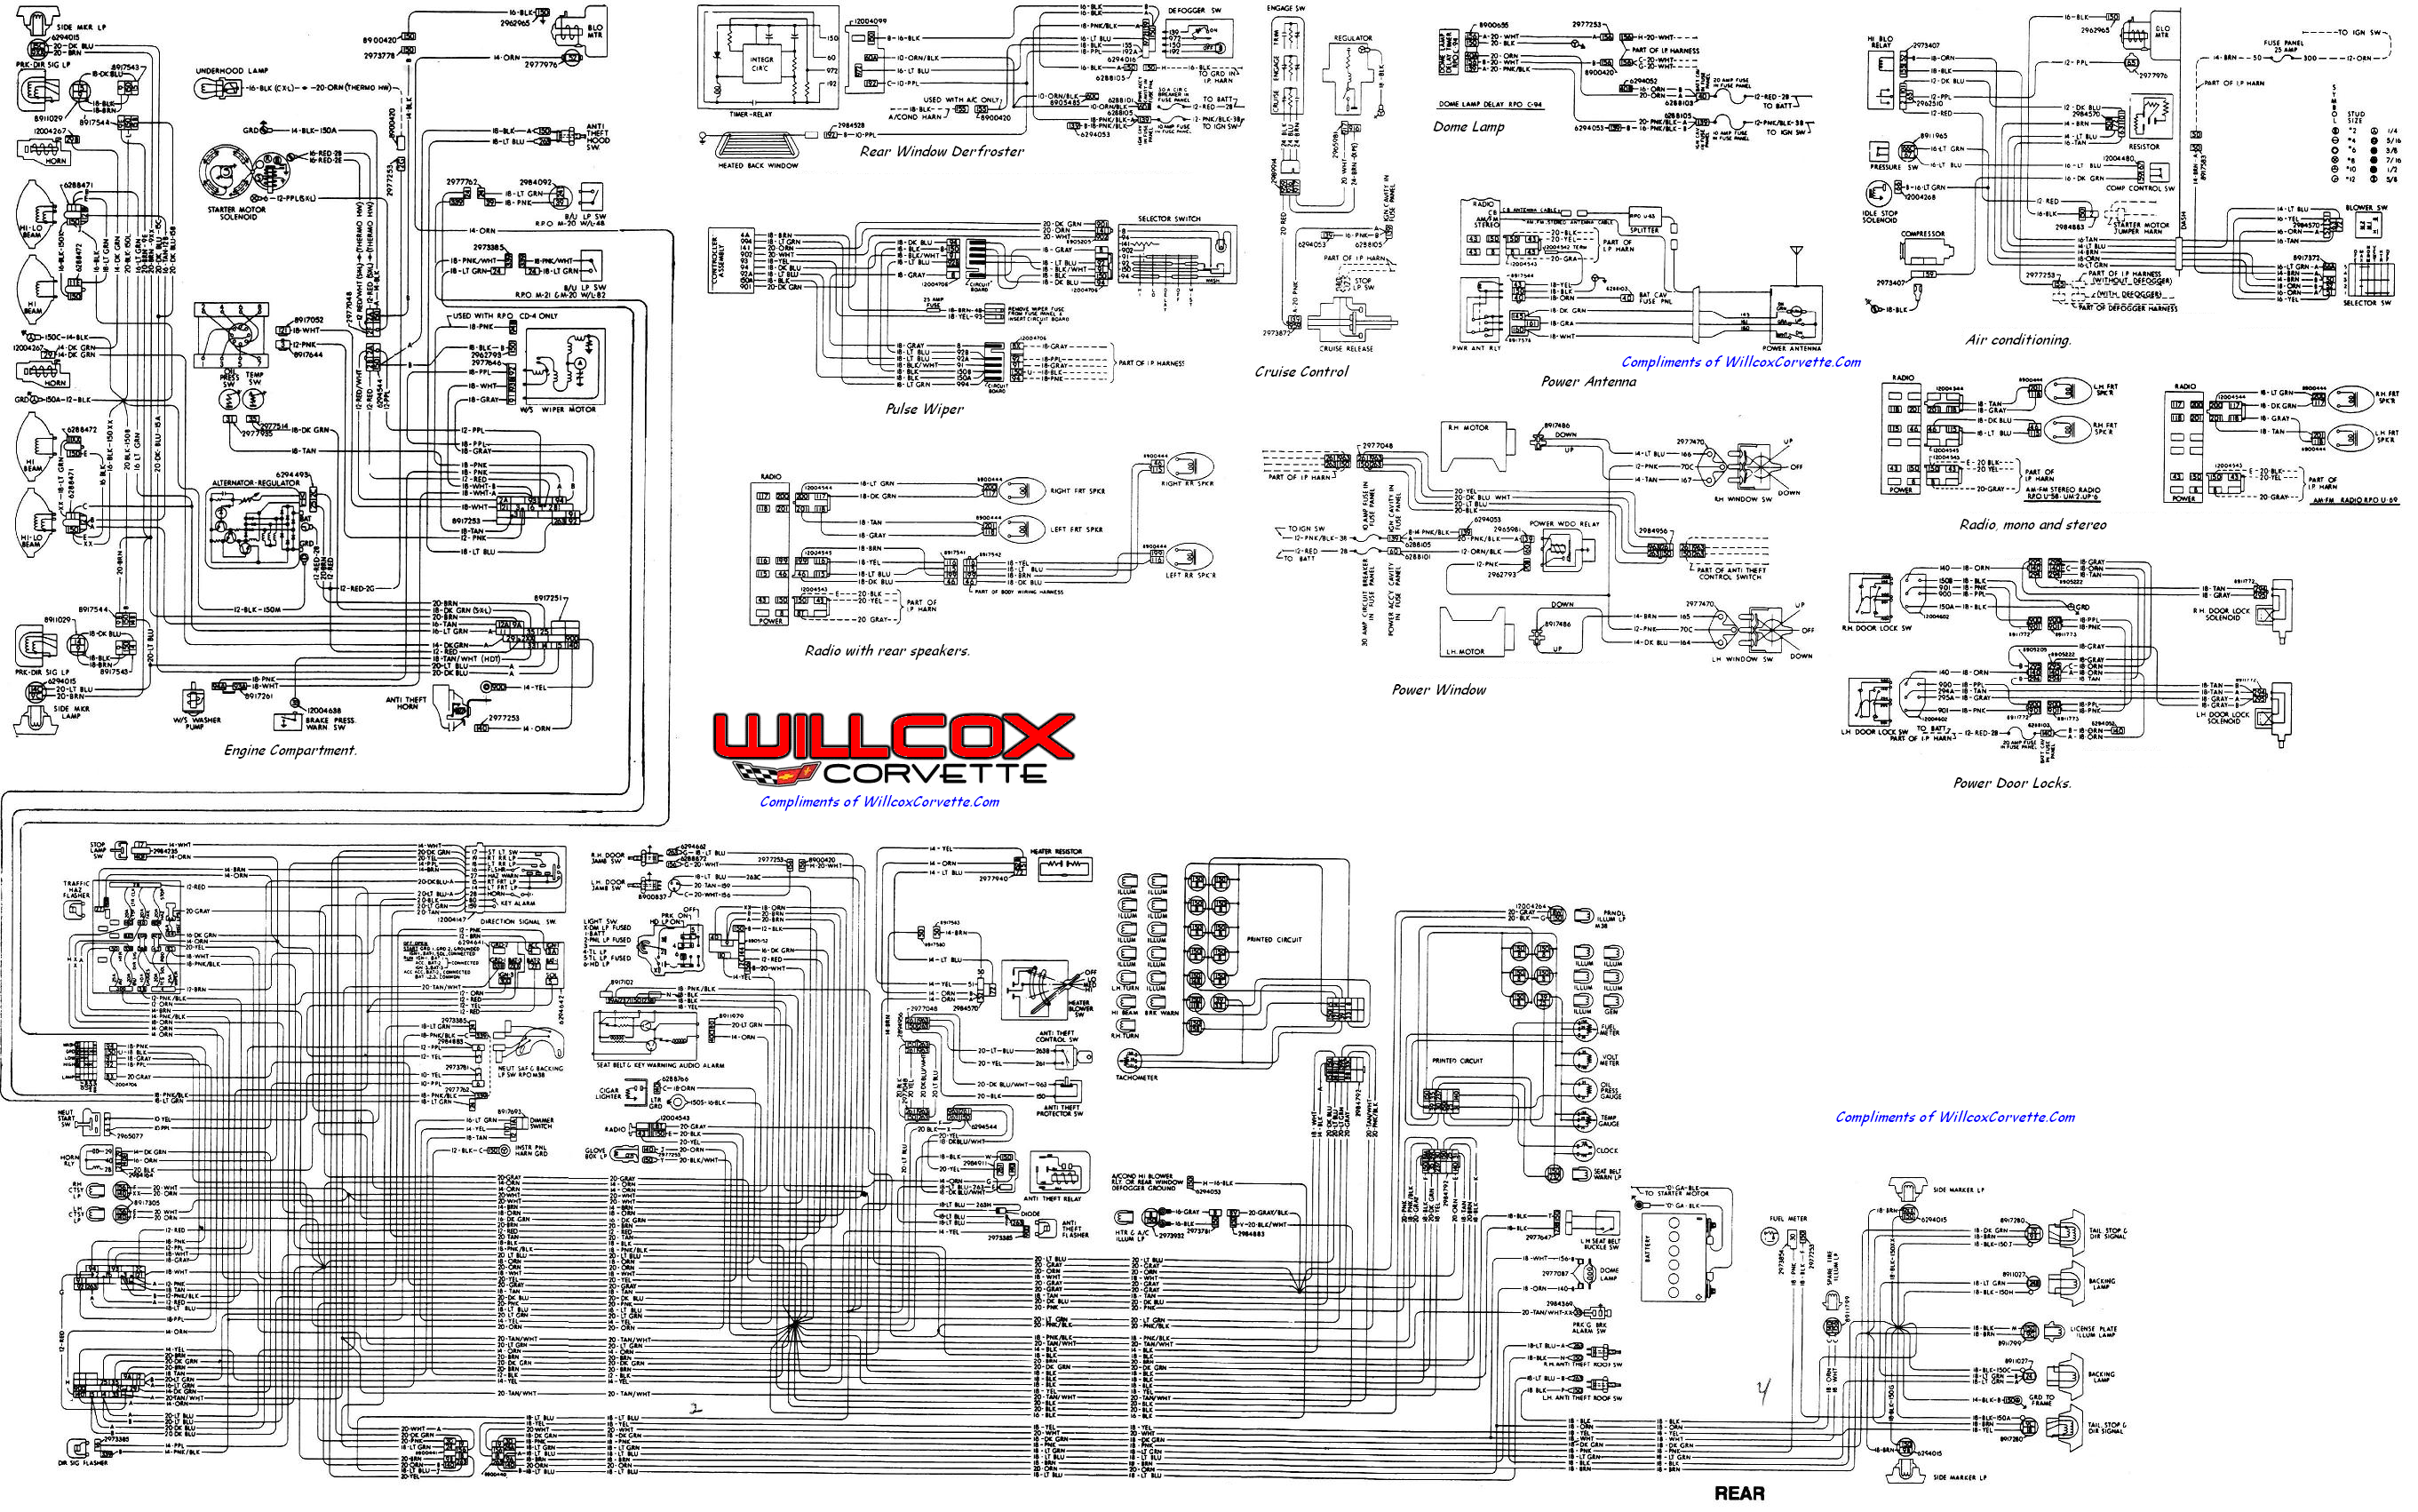 1975 chevy el camino wiring diagram schematic wiring diagram El Camino Wiring Schematic 1975 chevy el camino wiring diagram schematic